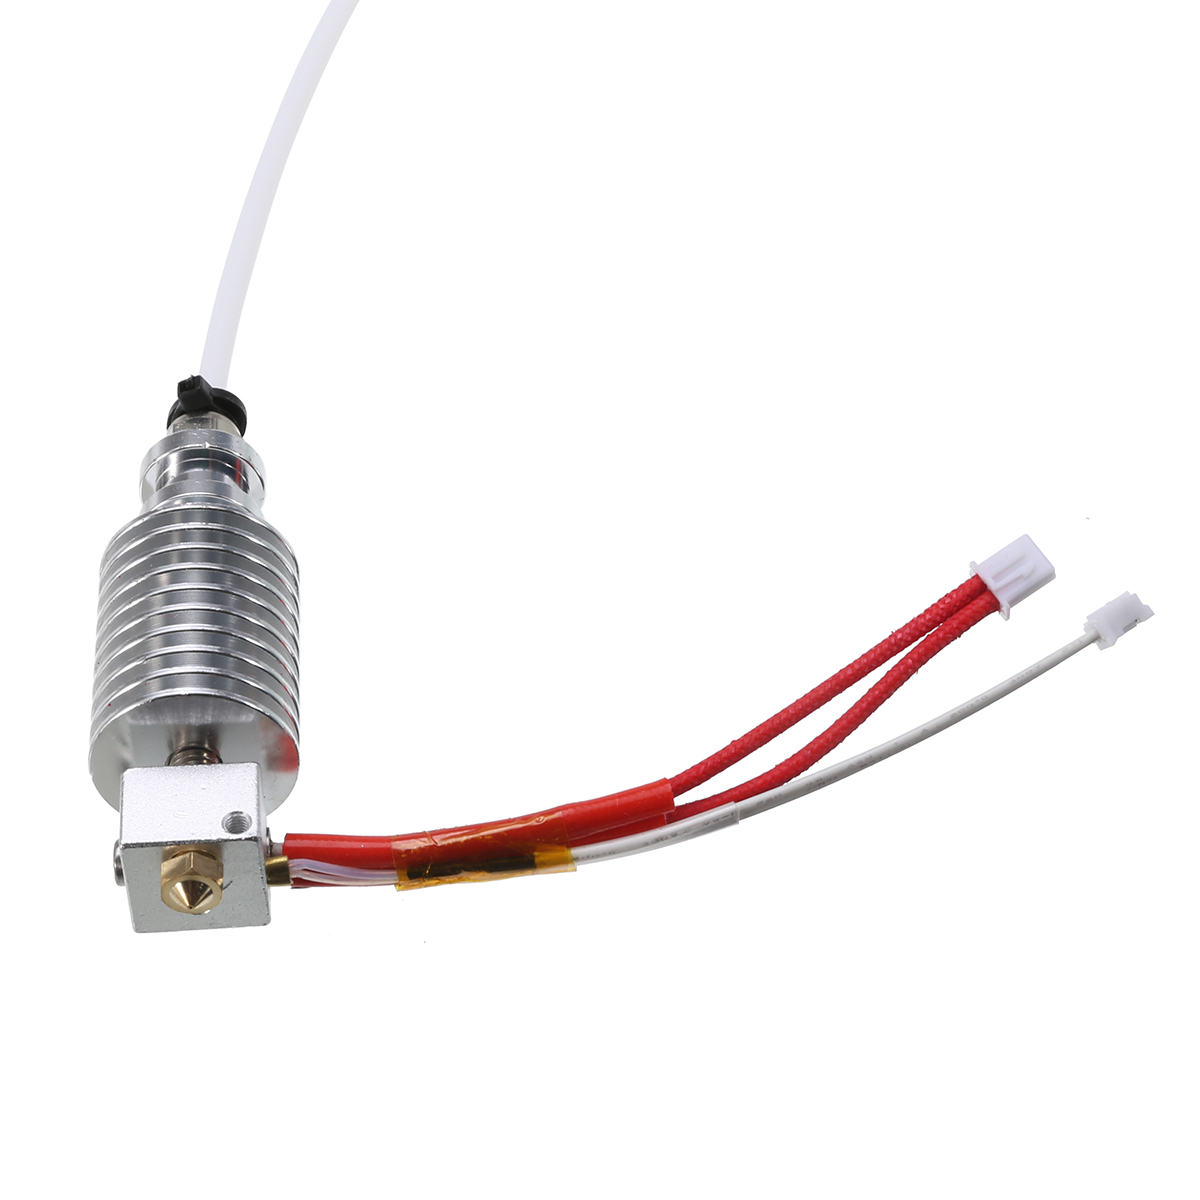 3D Printer Accessories Updated Straight type V5 J head Hot End 0 4mm 1 75mm For Anycubic I3 Mega 3D Printer Extruder in 3D Printer Parts Accessories from Computer Office